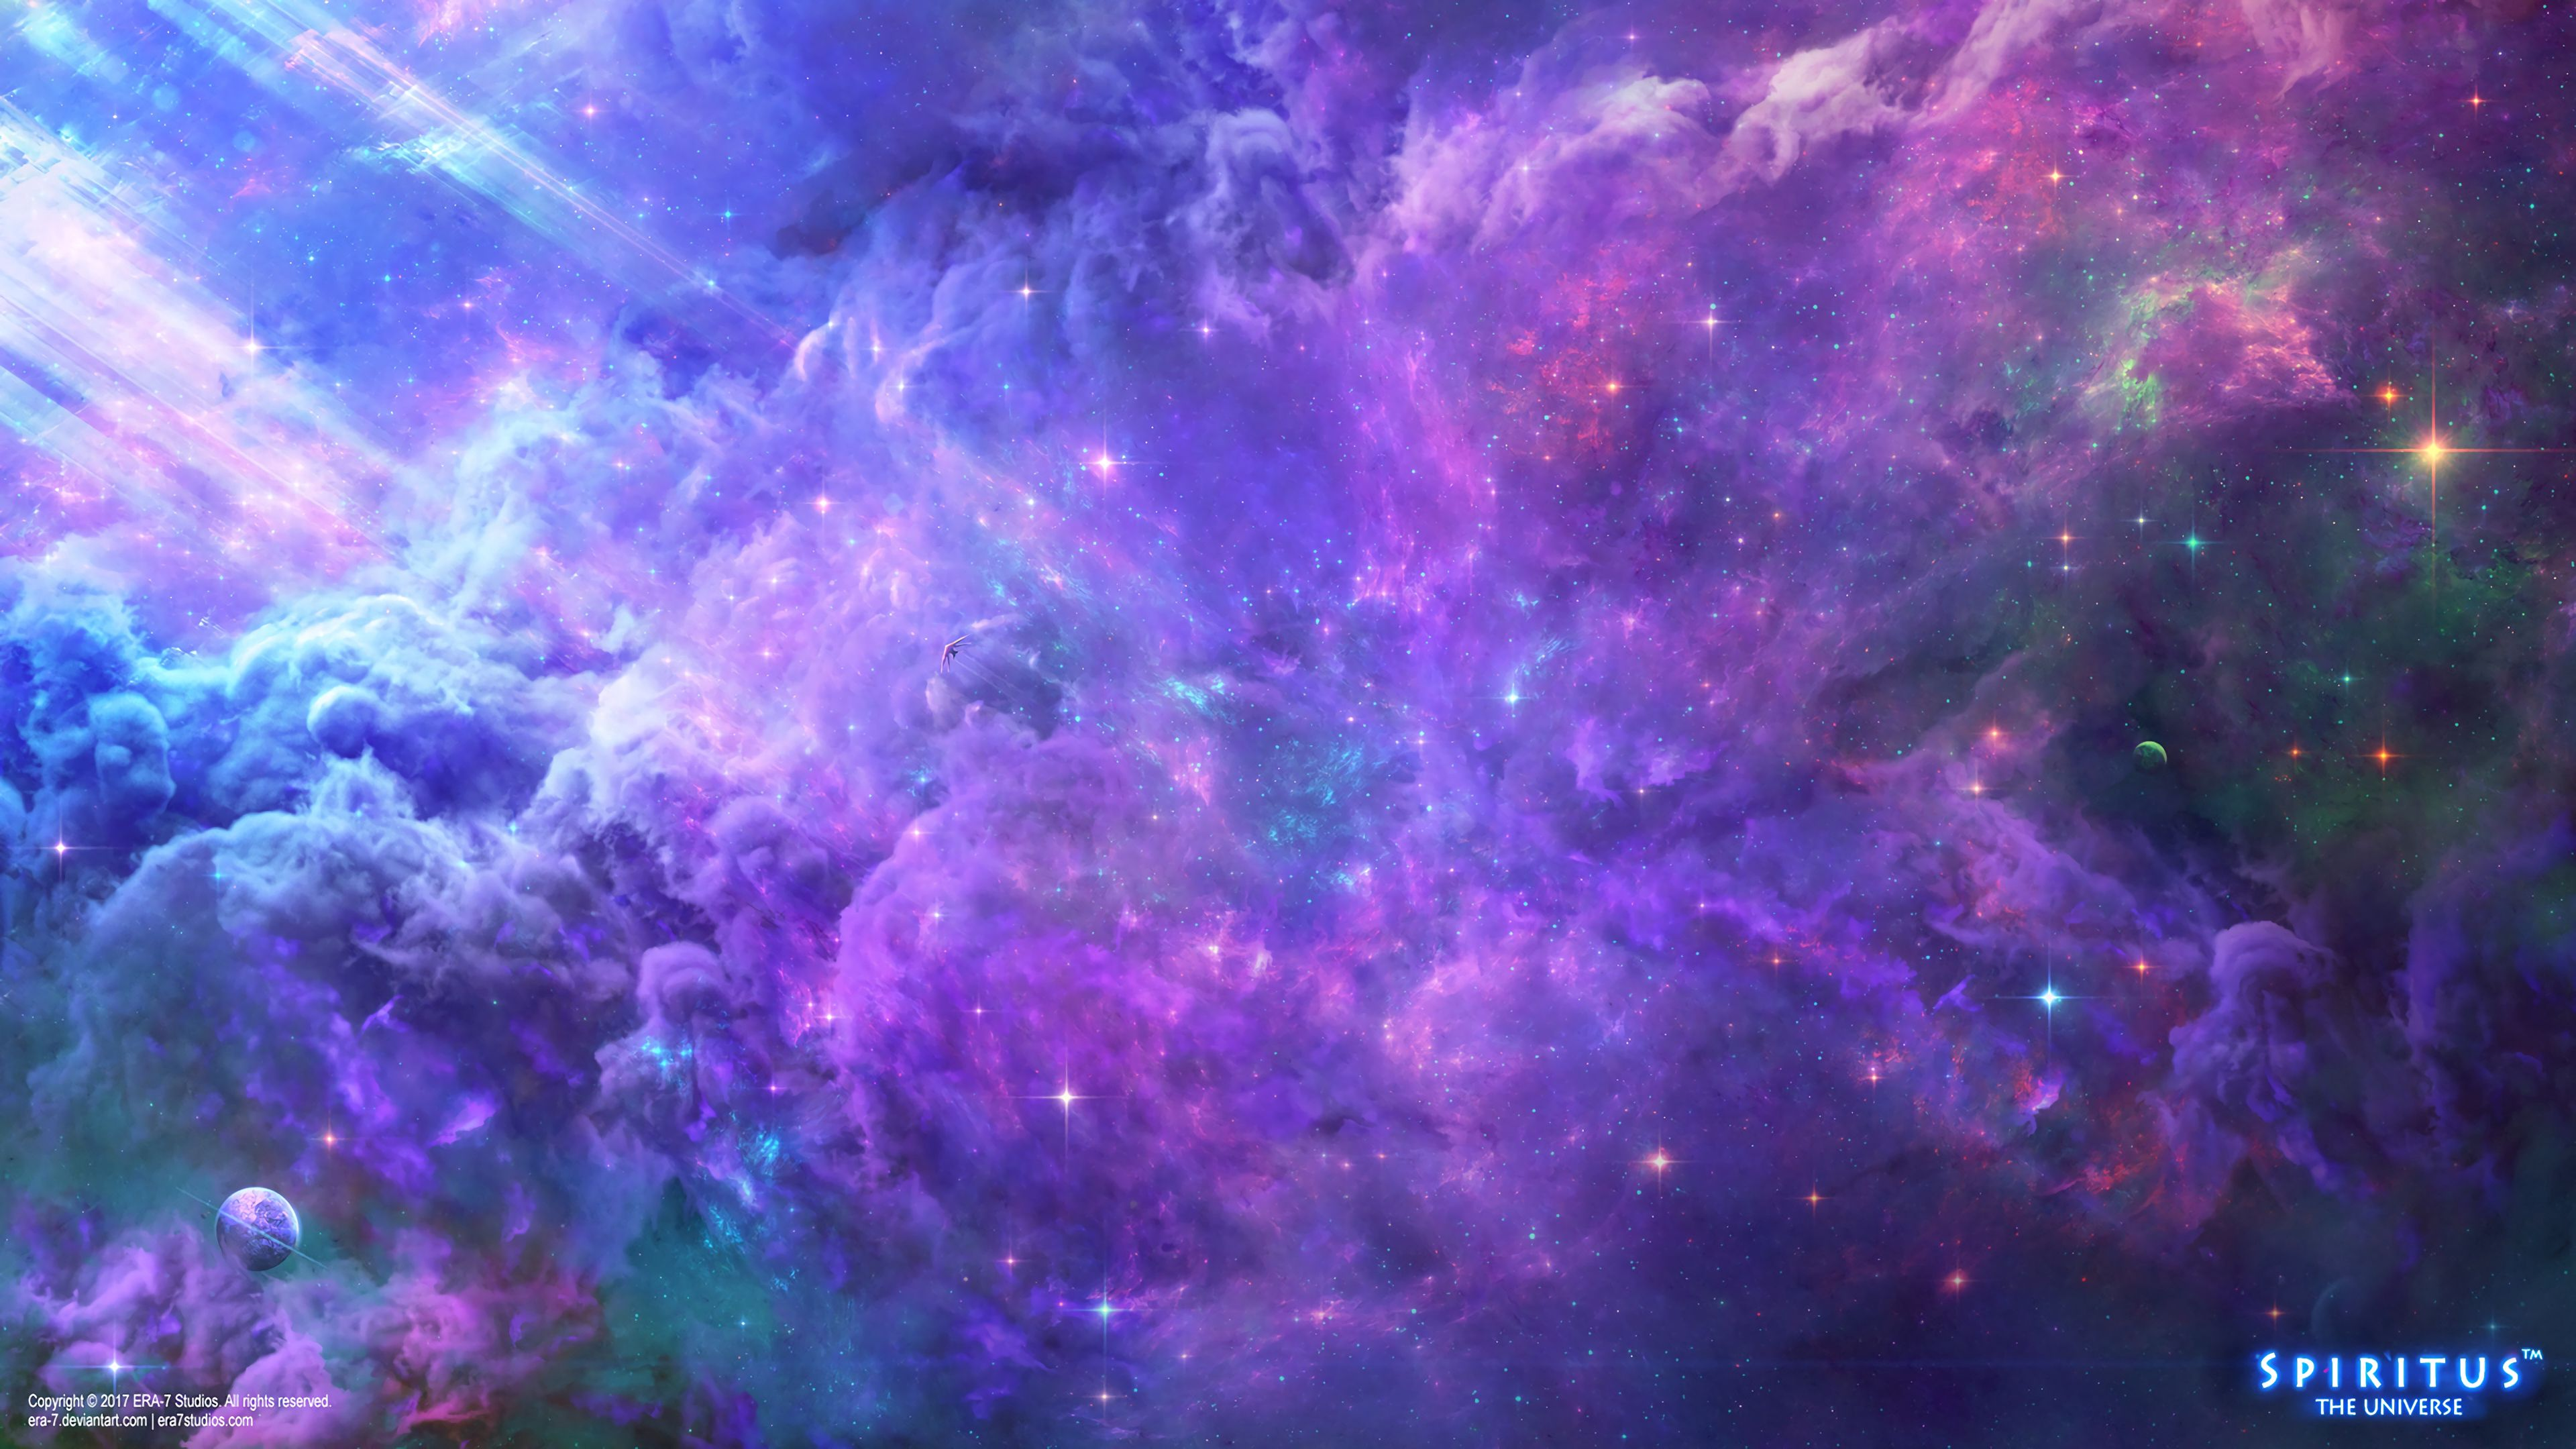 77725 download wallpaper Sky, Universe, Shine, Bright, Brilliance screensavers and pictures for free